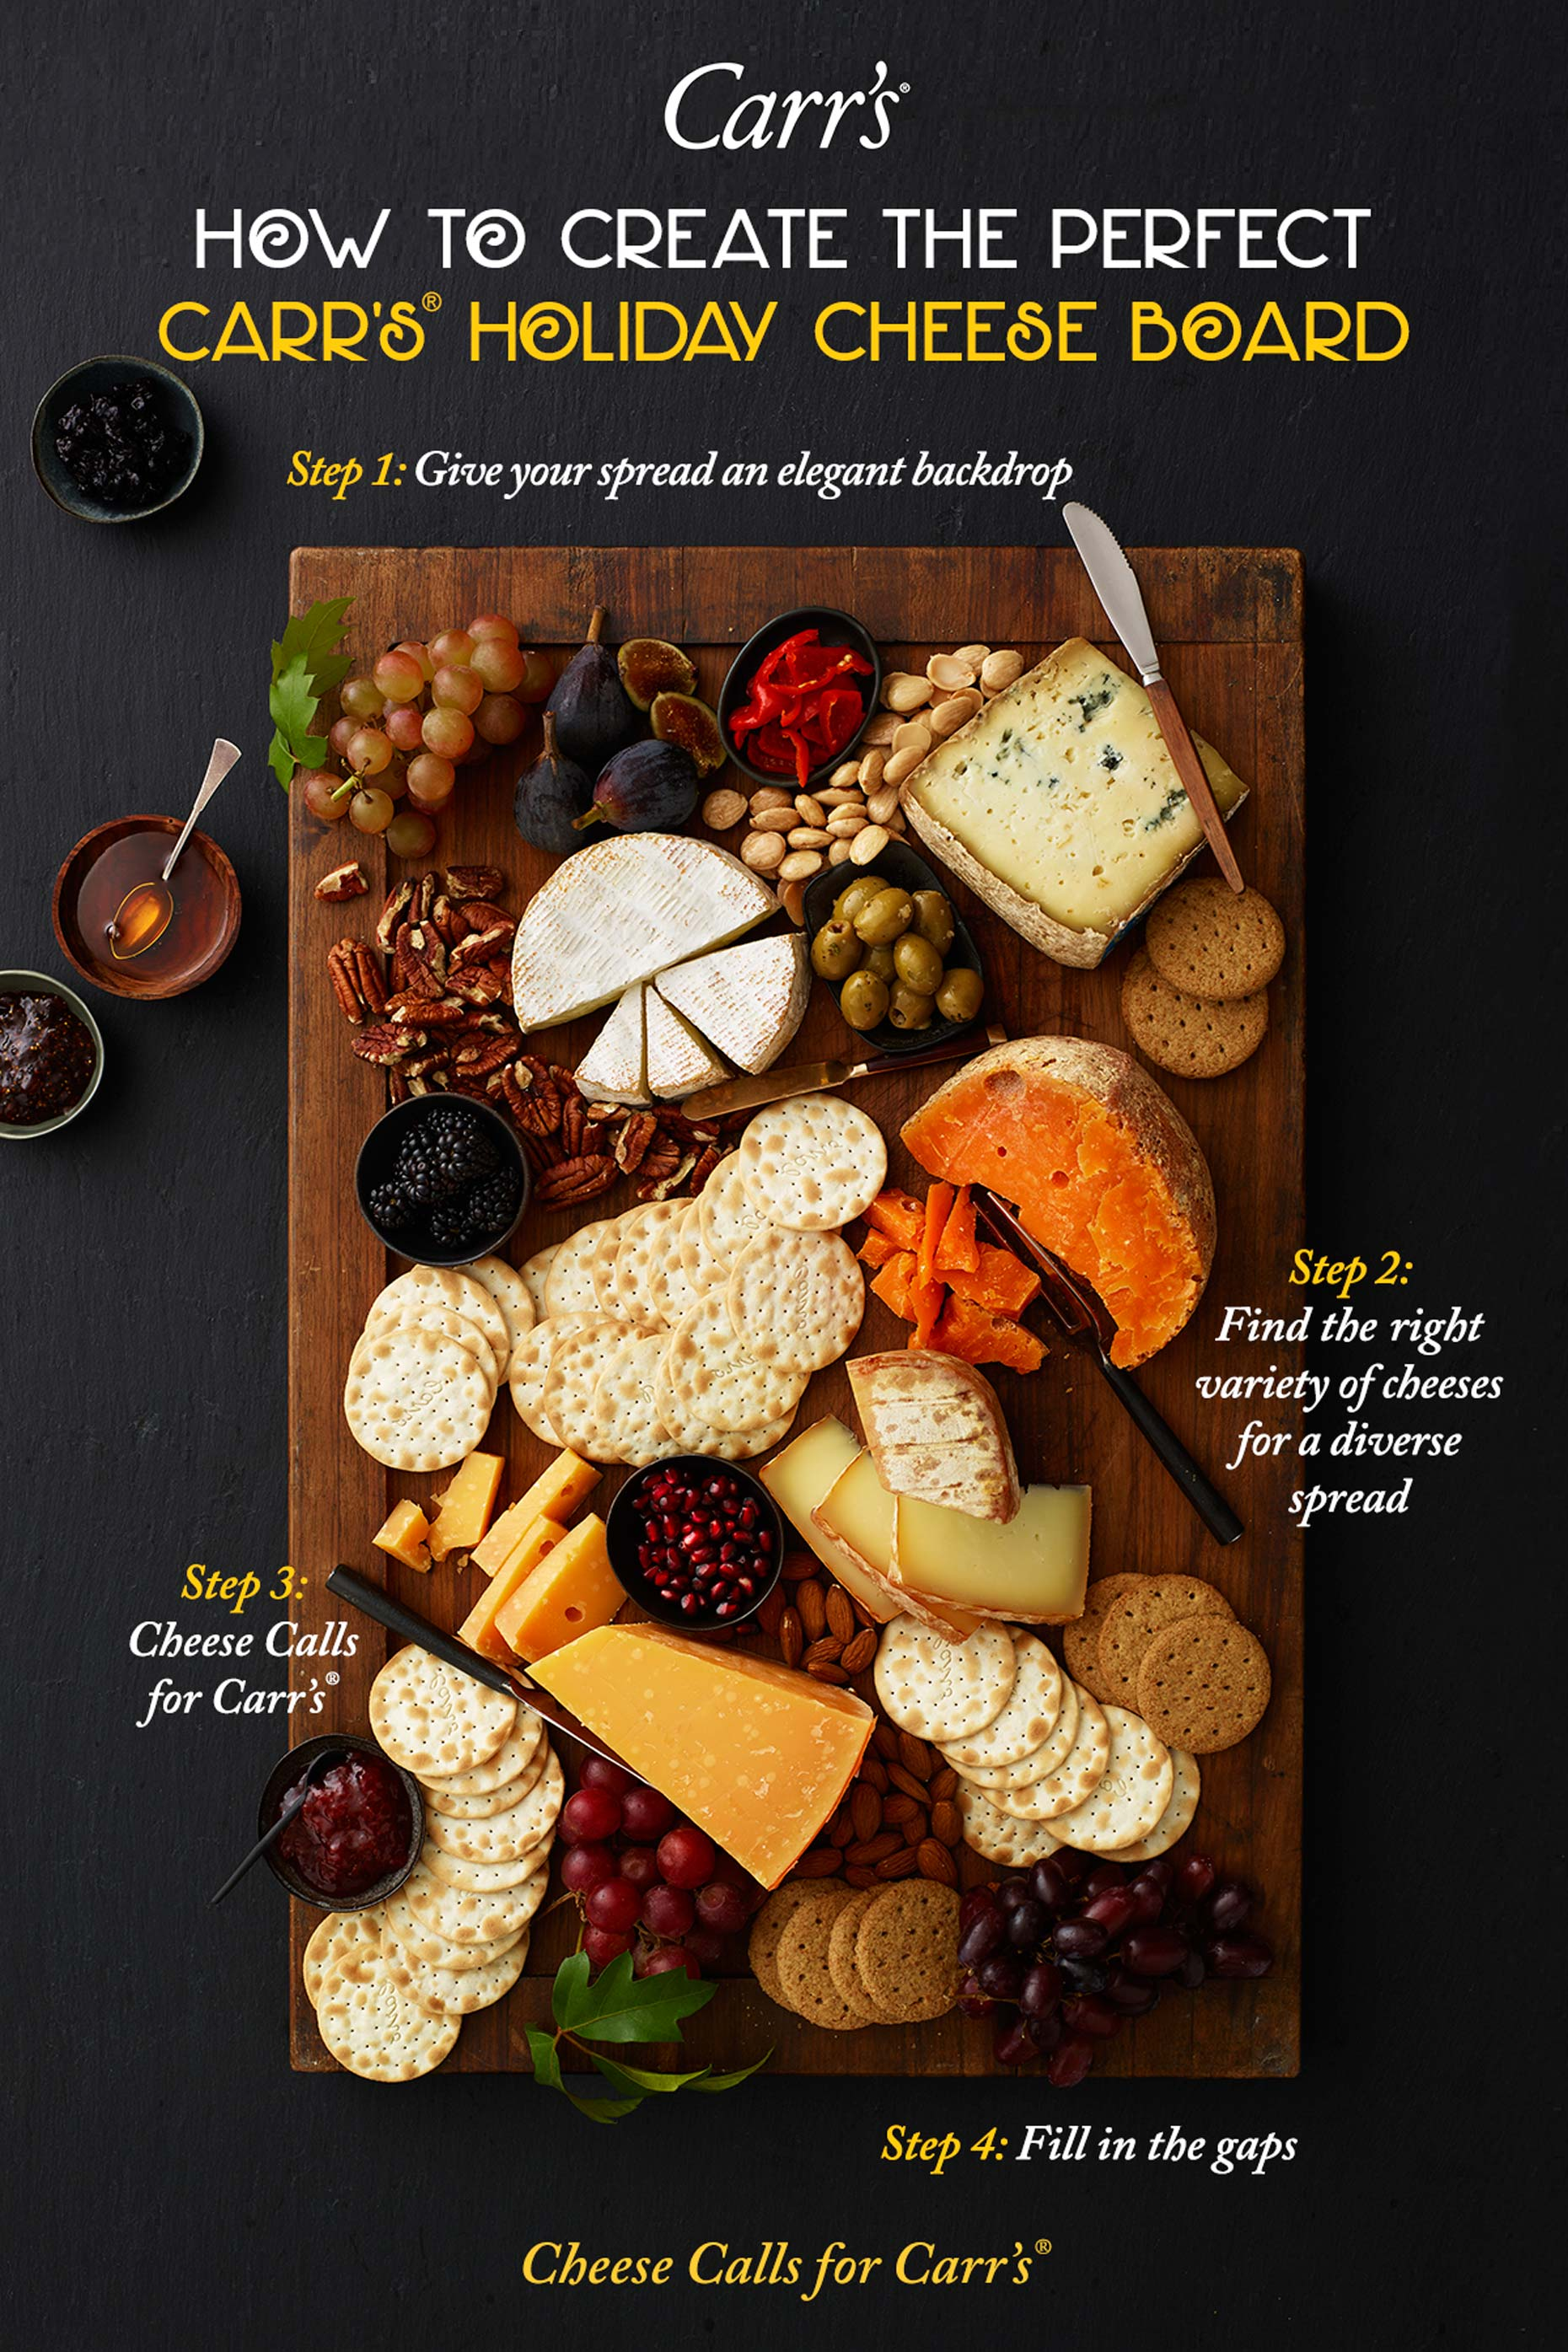 adrianmueller_food_photographer_newyork_carrs-crackers_14